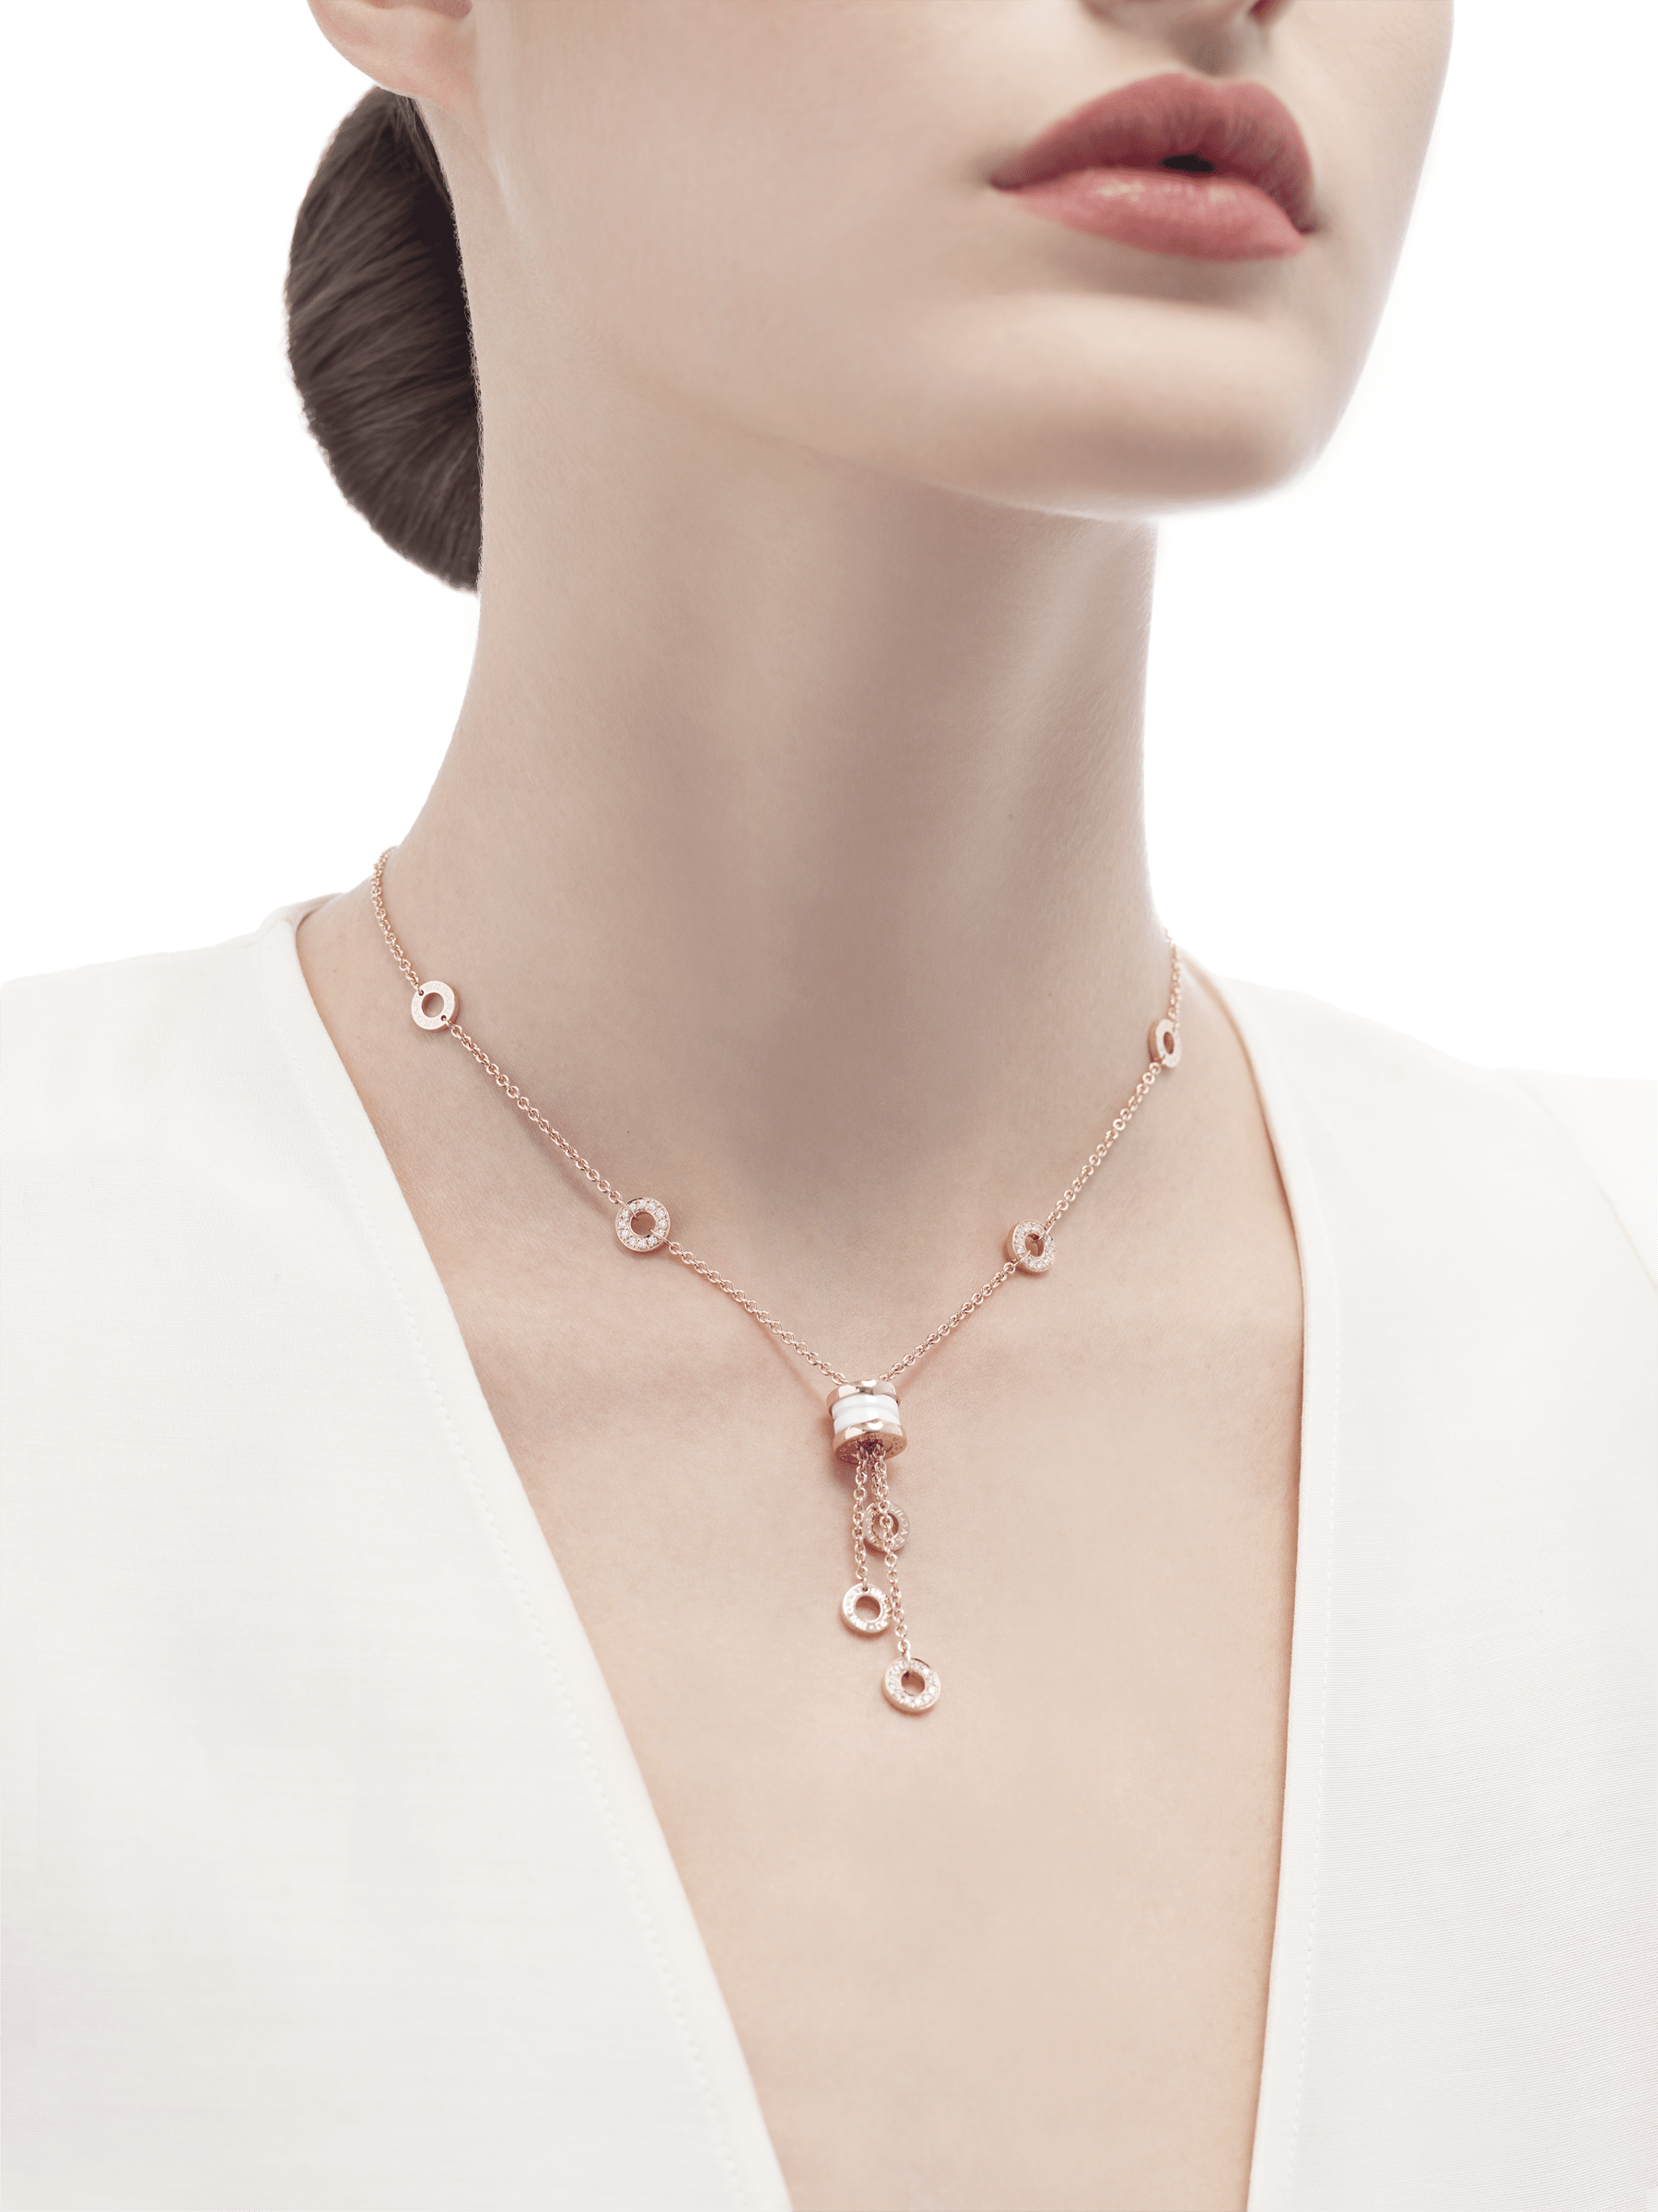 B.zero1 necklace with 18 kt rose gold chain set with pavé diamonds and pendant in 18 kt rose gold and white ceramic. 347577 image 3